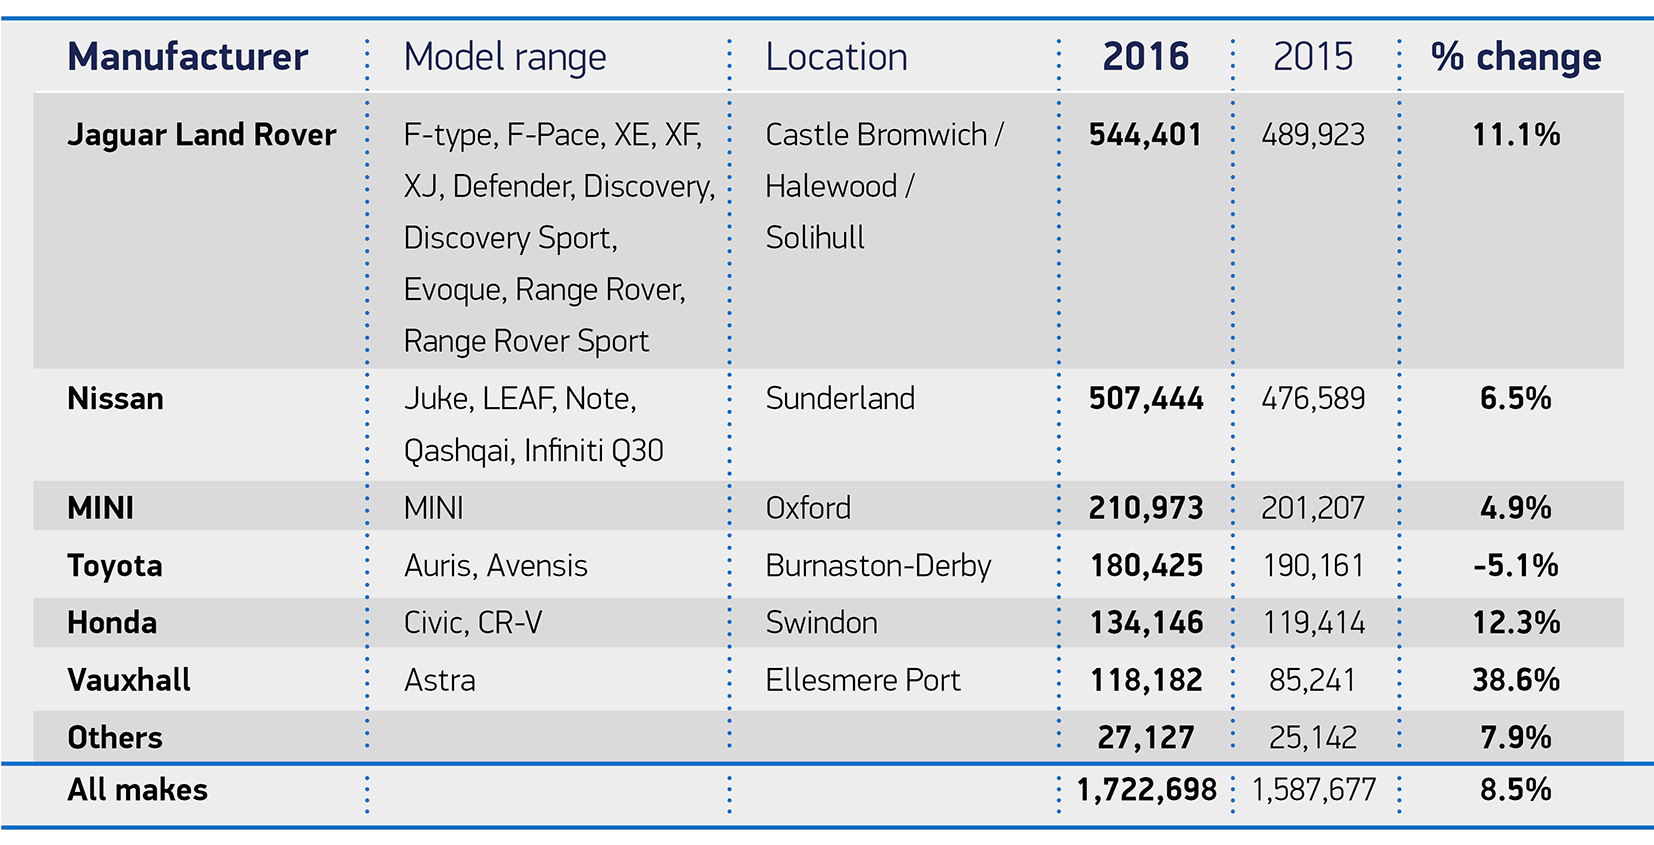 Manufacturing-of-cars-in-the-UK-by-brand-table-2017